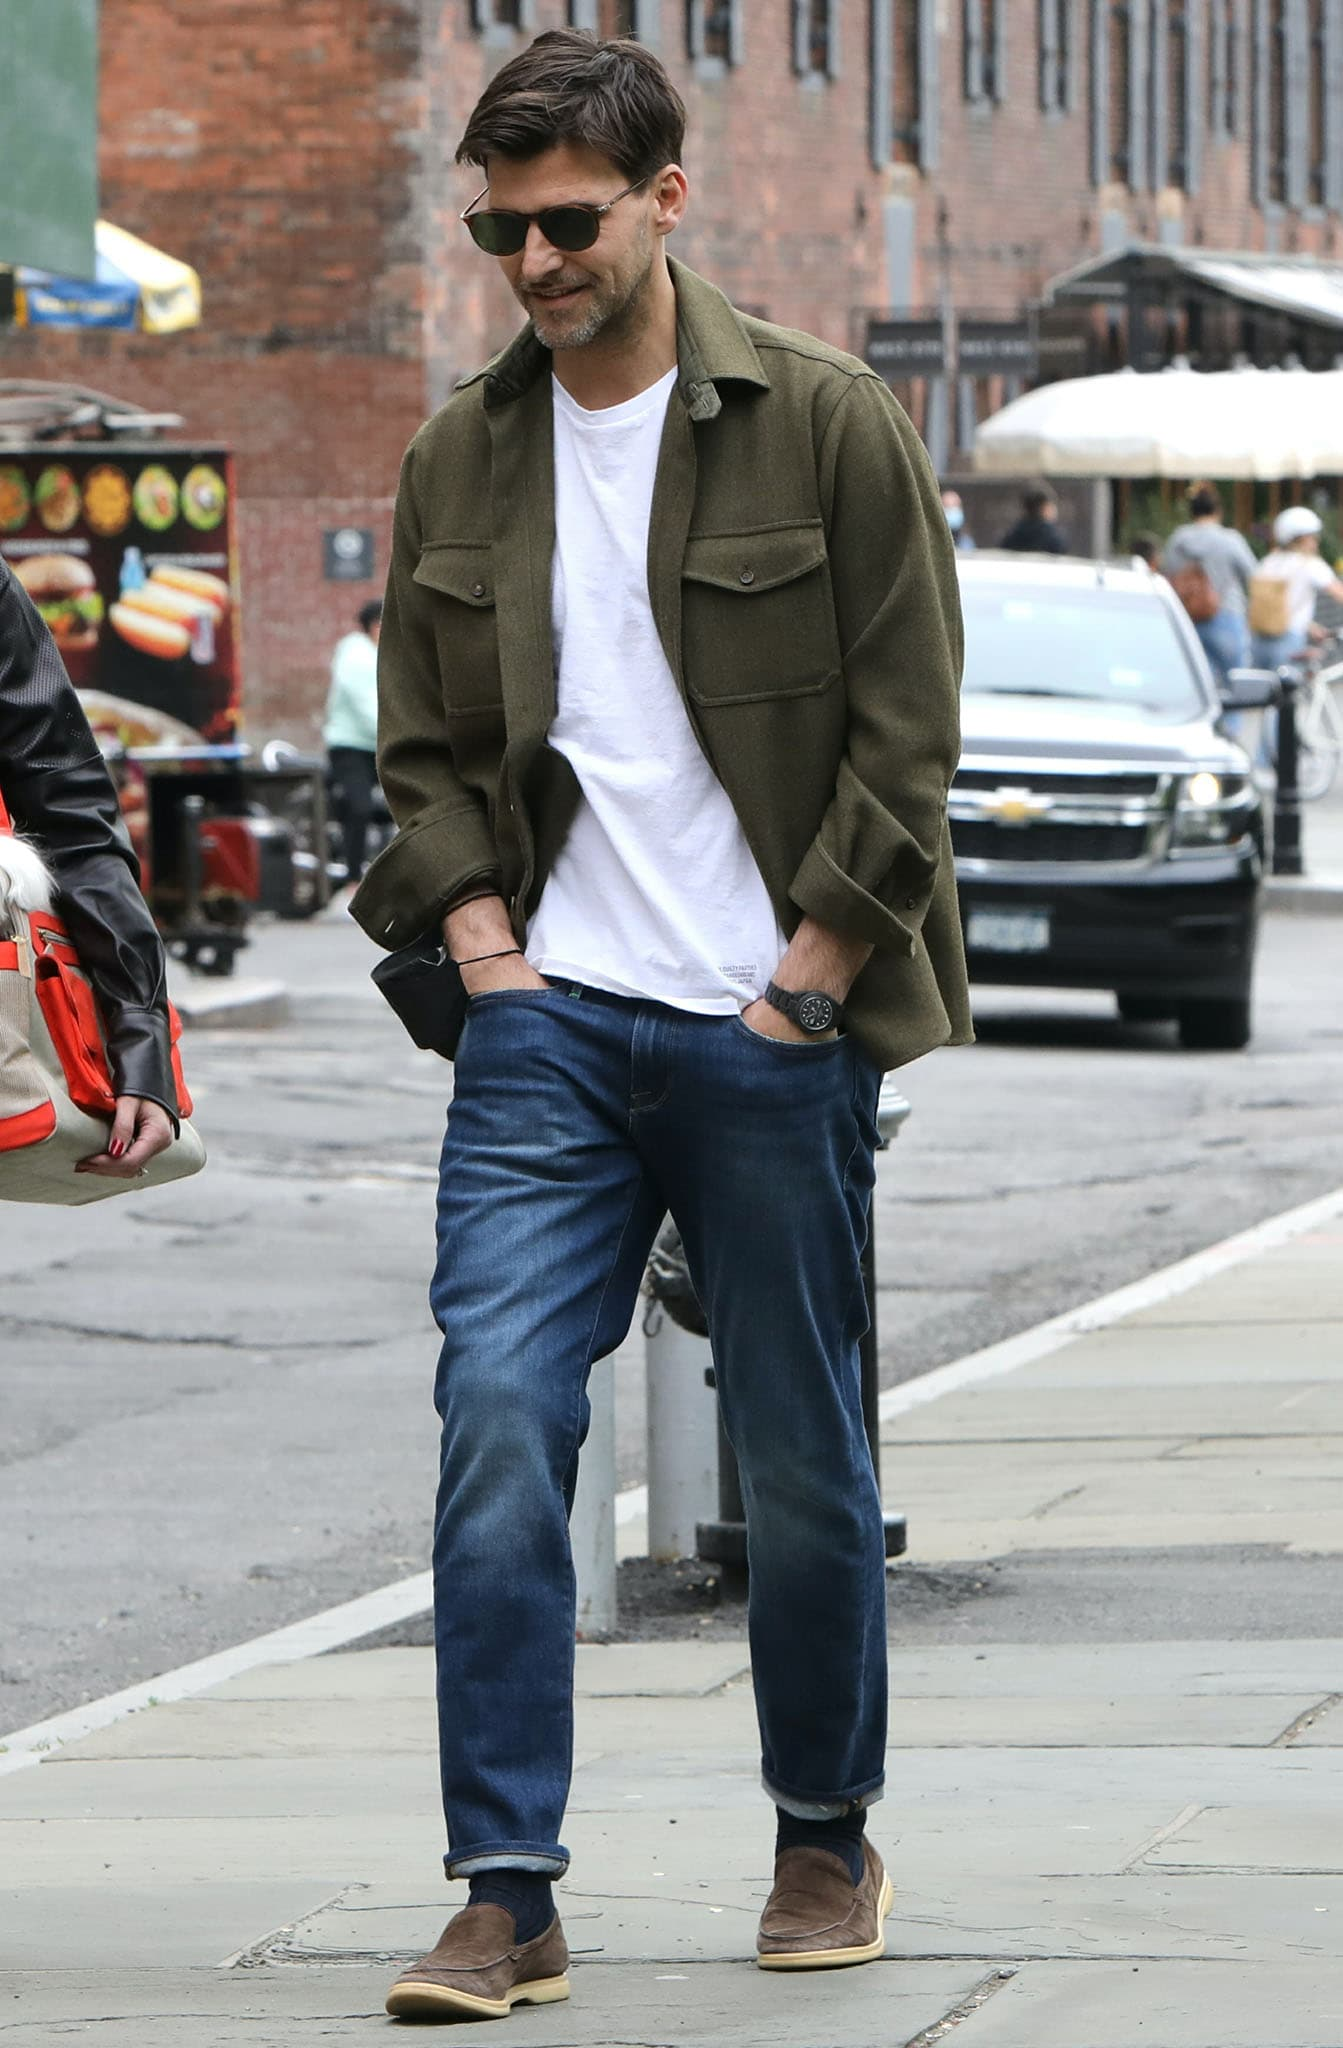 Johannes Huebl looks dapper in a white tee with blue jeans and an army green jacket